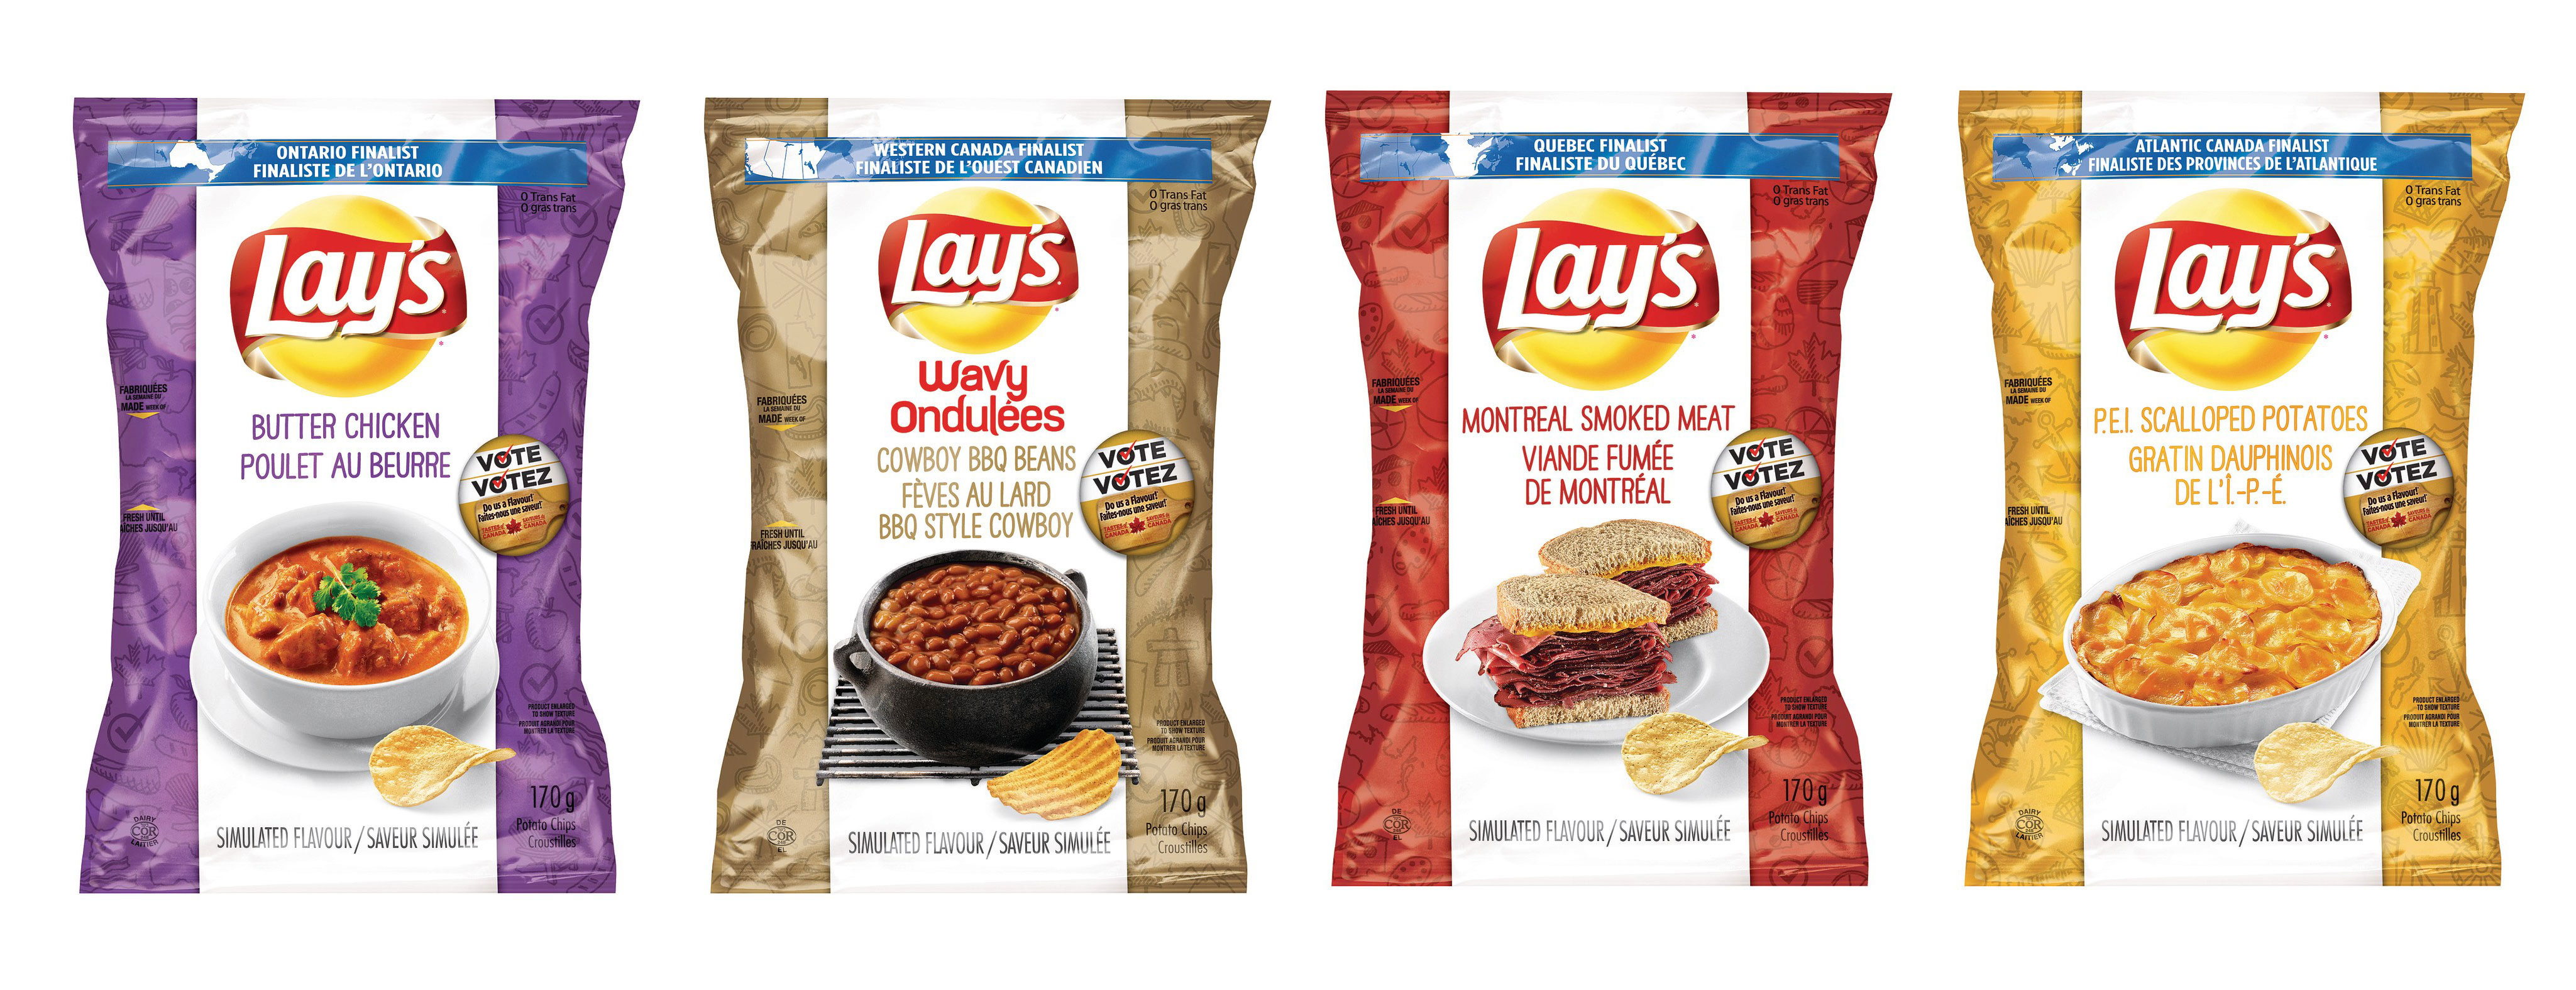 How to enter lays flavor contest